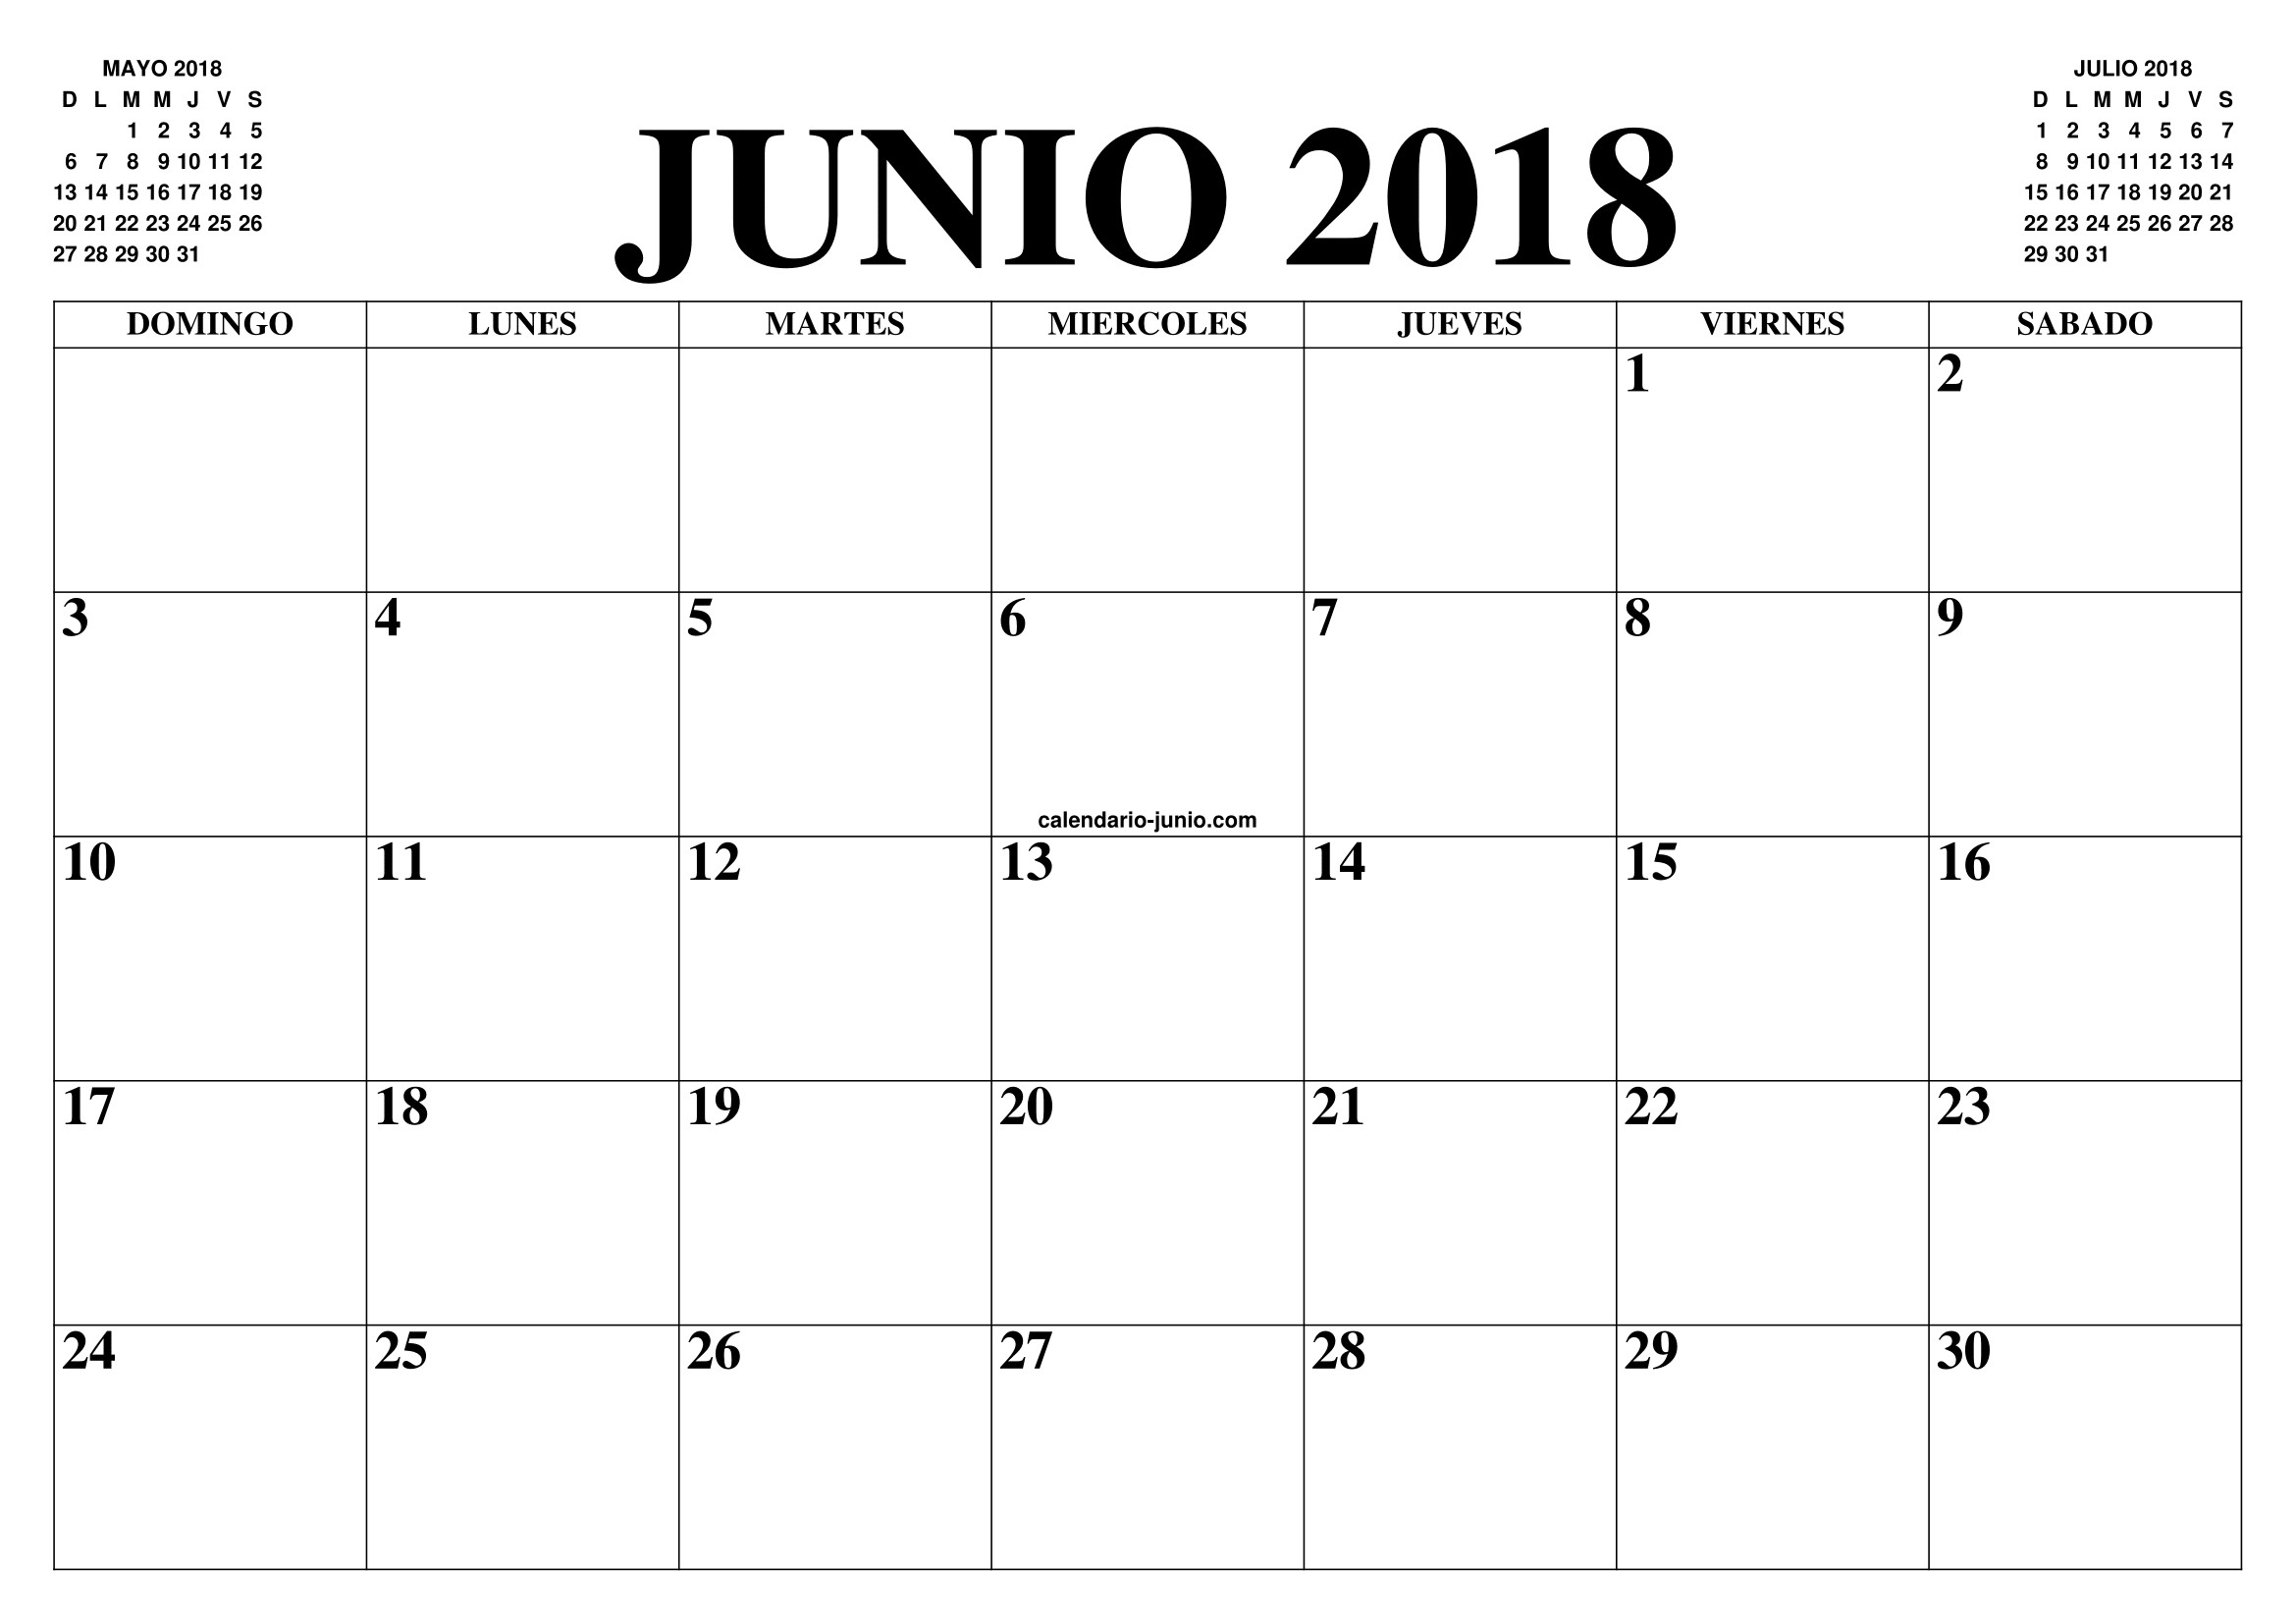 Calendario Argentina 2019 Para Imprimir Más Caliente Calendario Junio Related Keywords & Suggestions Calendario Junio Of Calendario Argentina 2019 Para Imprimir Más Recientes Eur Lex R2454 Es Eur Lex